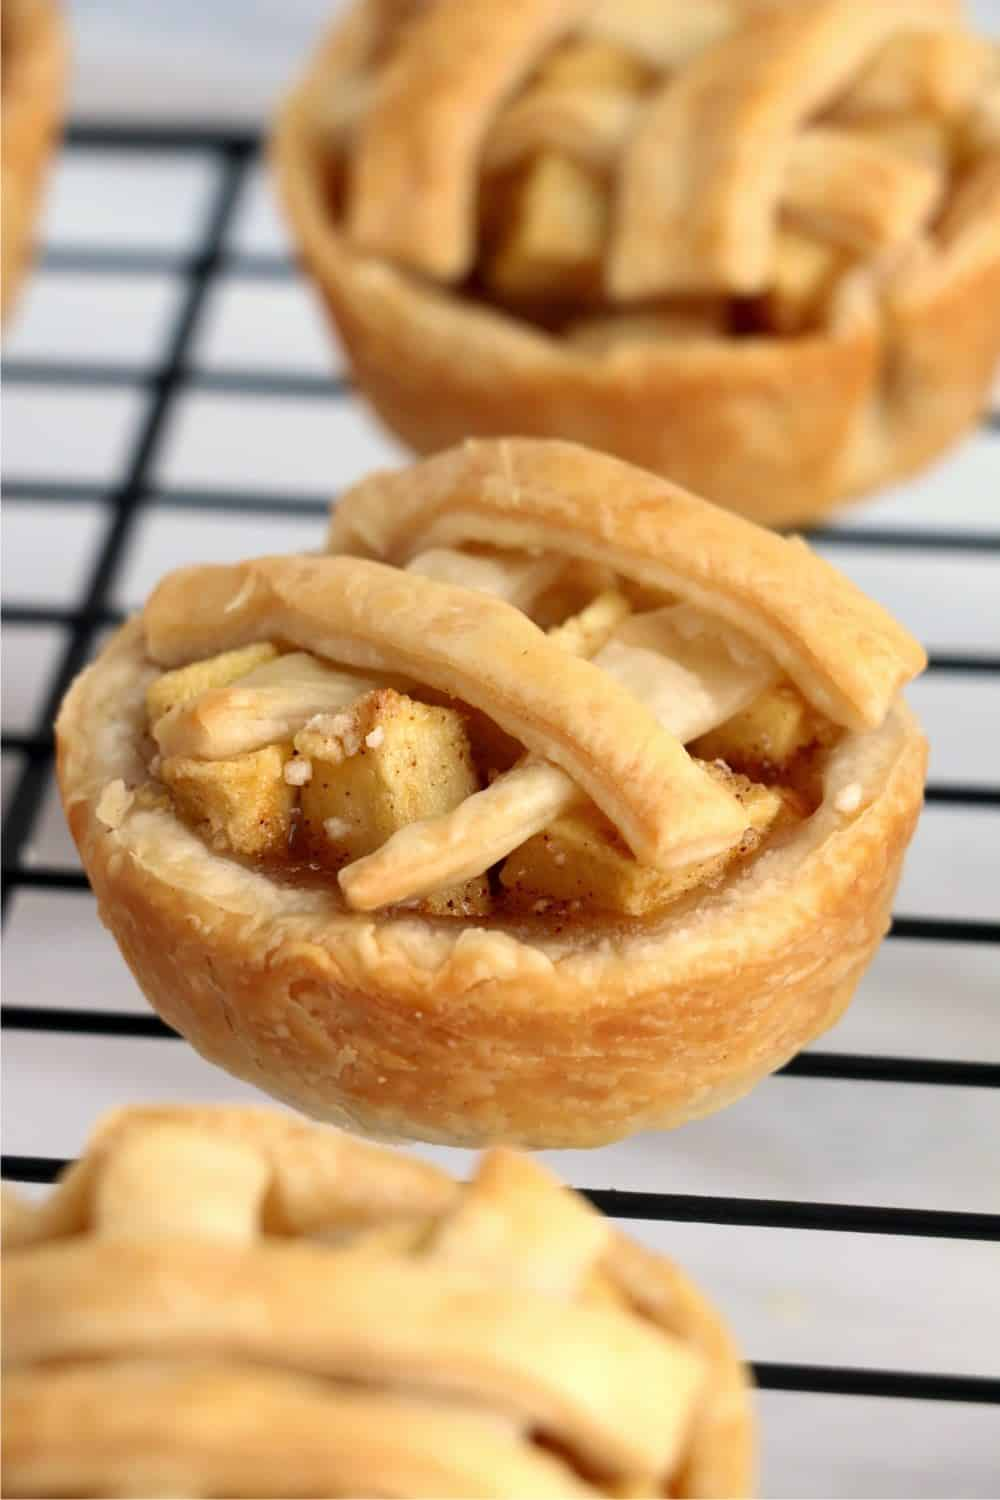 Mini apple pies cooling on a baking rack